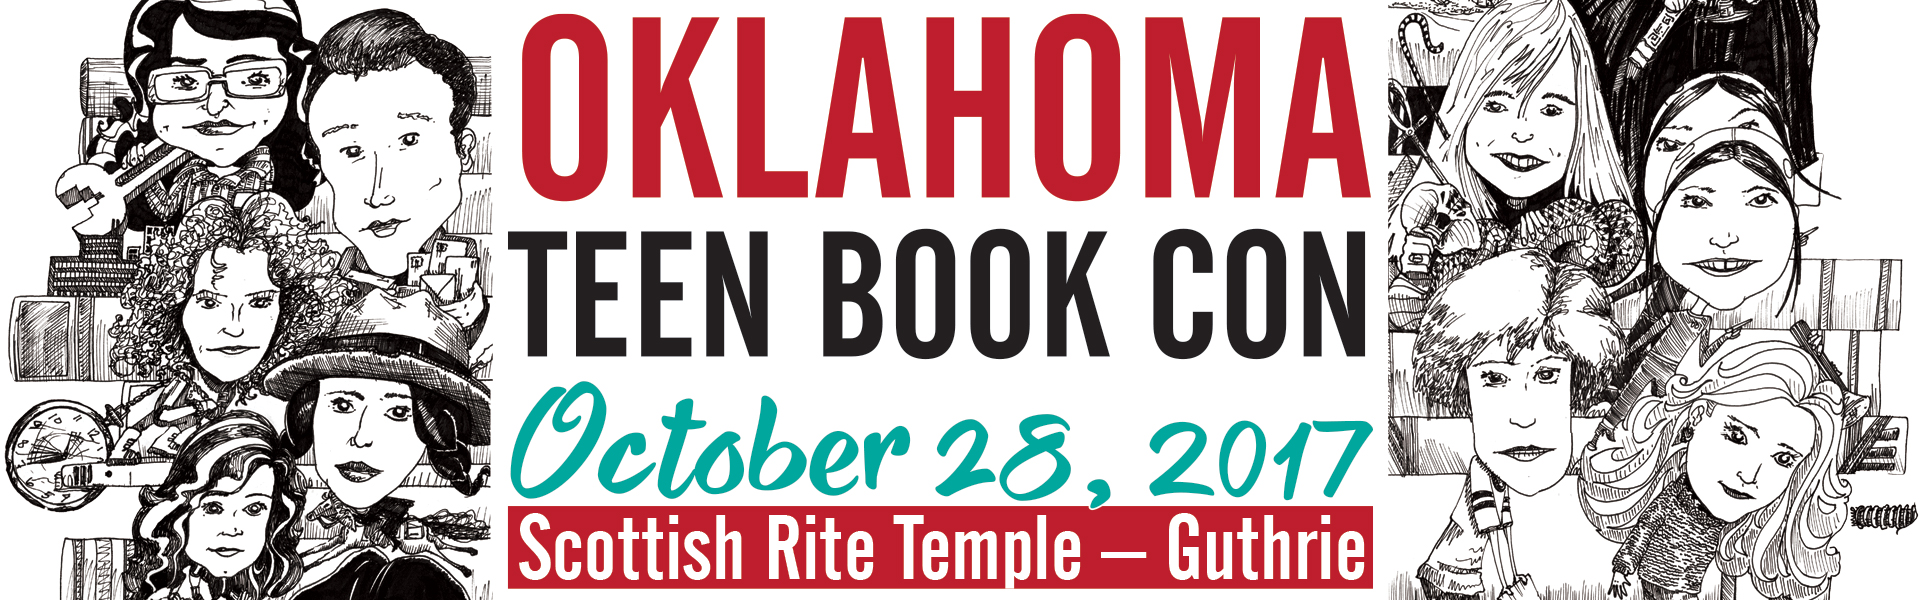 Oklahoma Teen Book Con Graphic